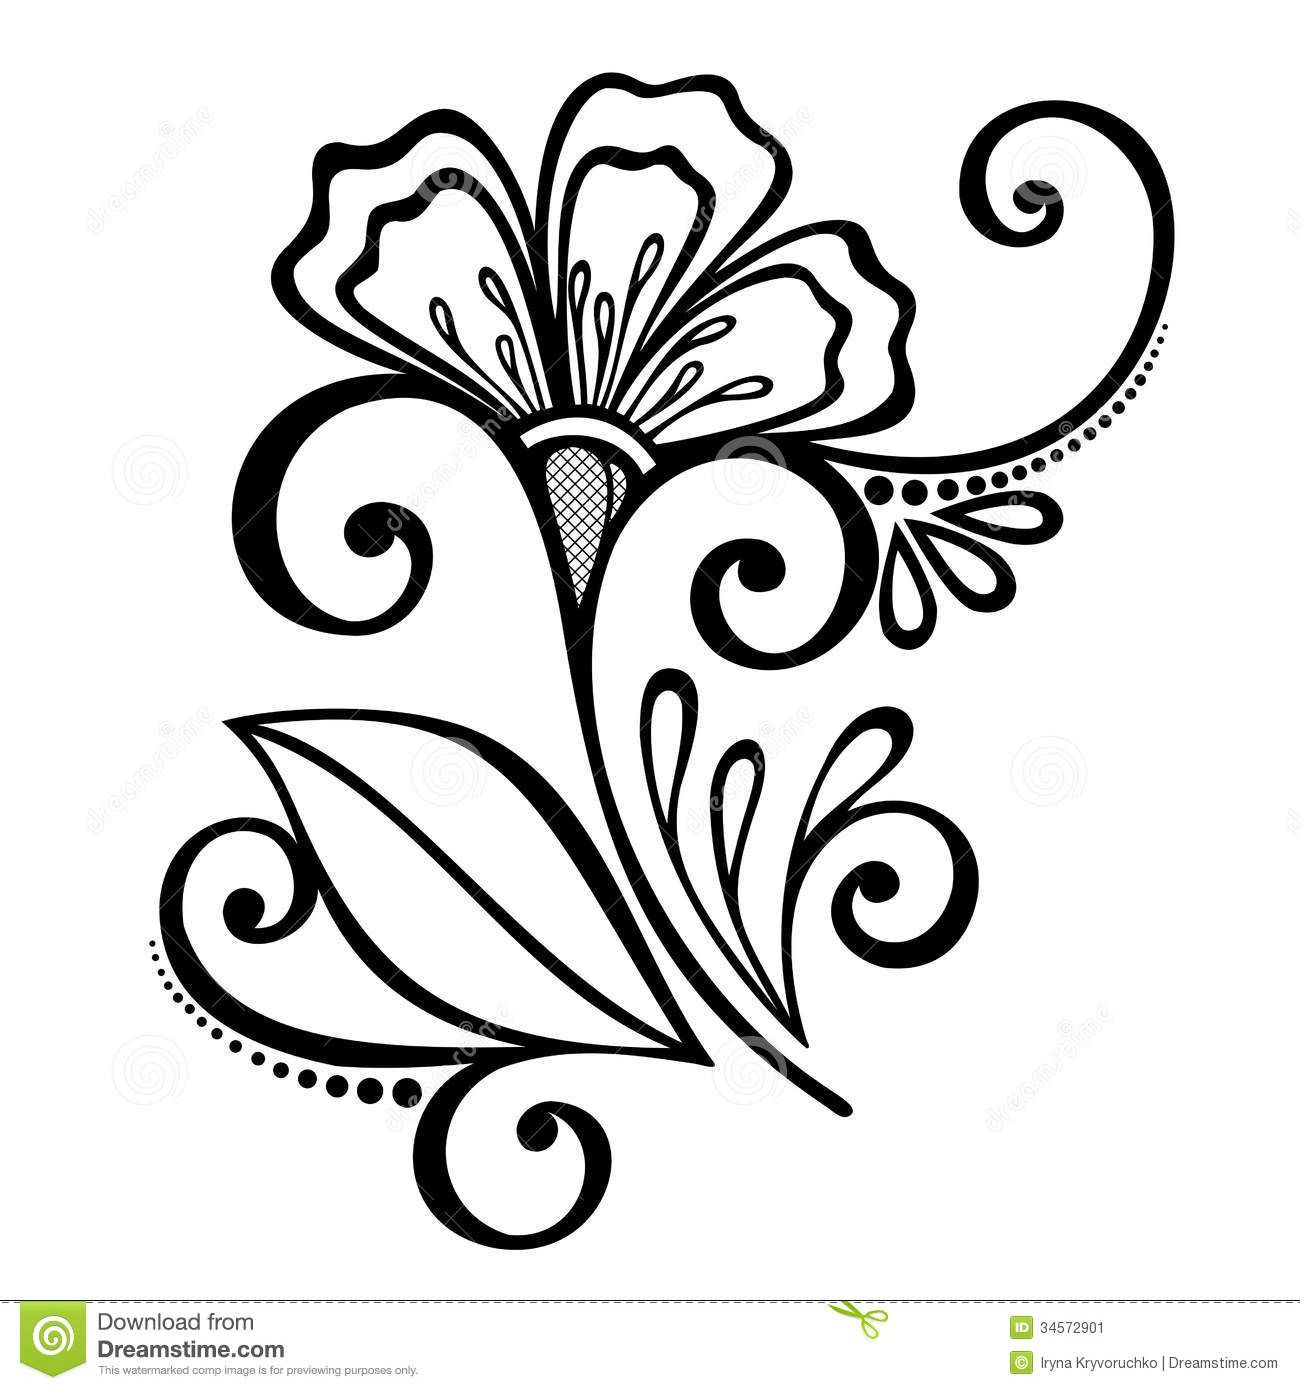 Flower Drawings Simple: How To Make A Beautiful Flower Drawing At GetDrawings